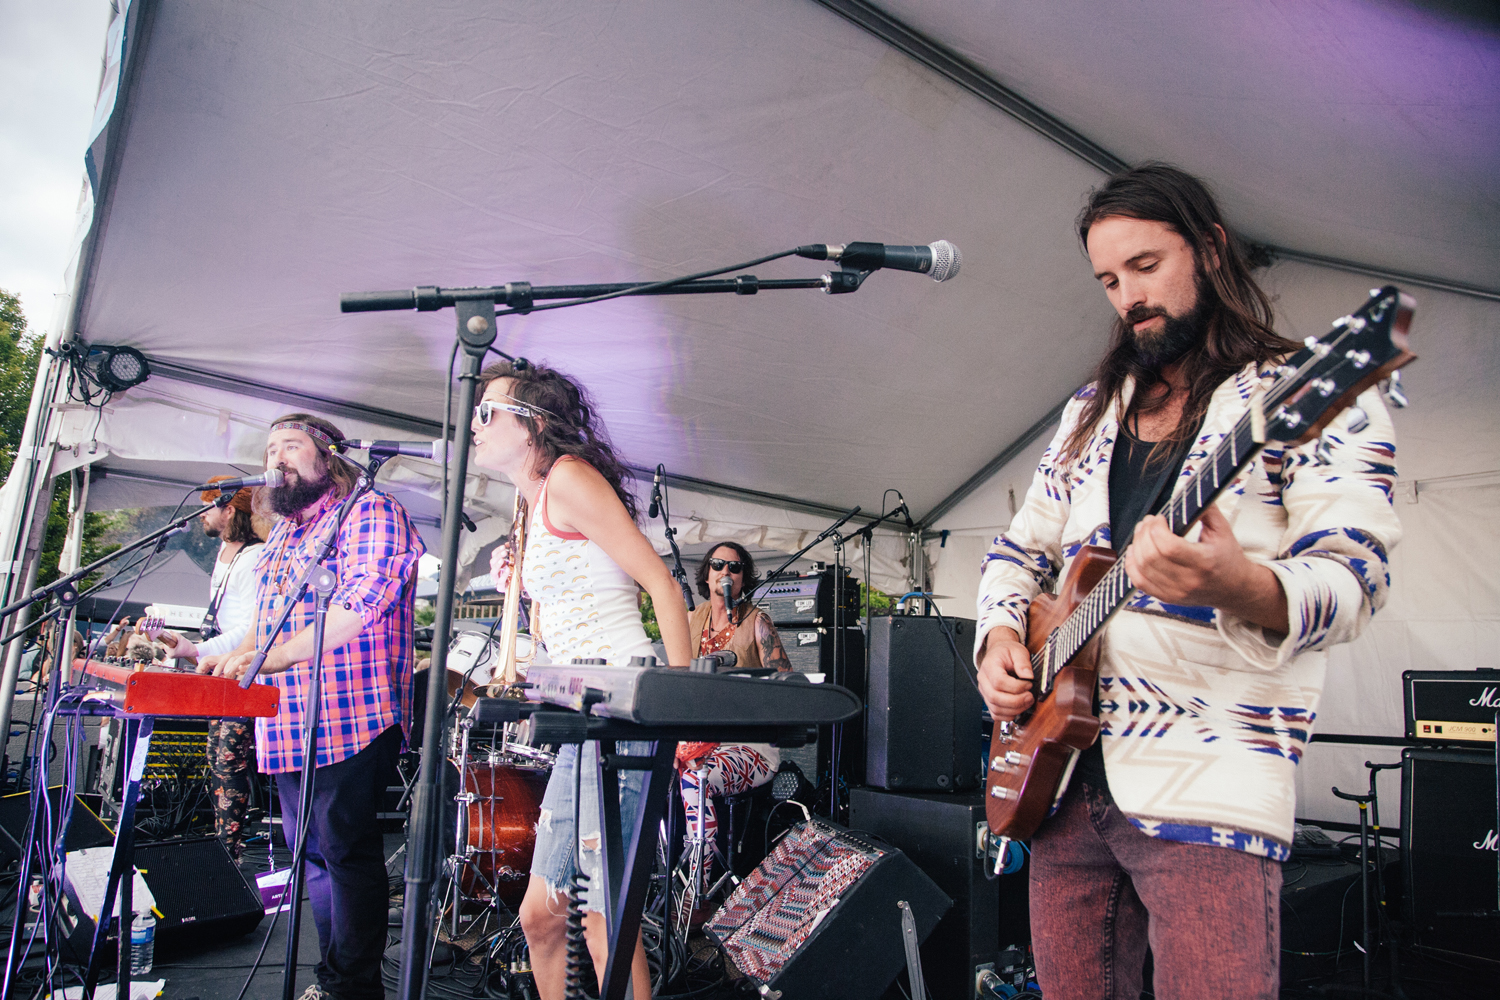 Bend Sinister @ SHOREFEST photo by Christine McAvoy